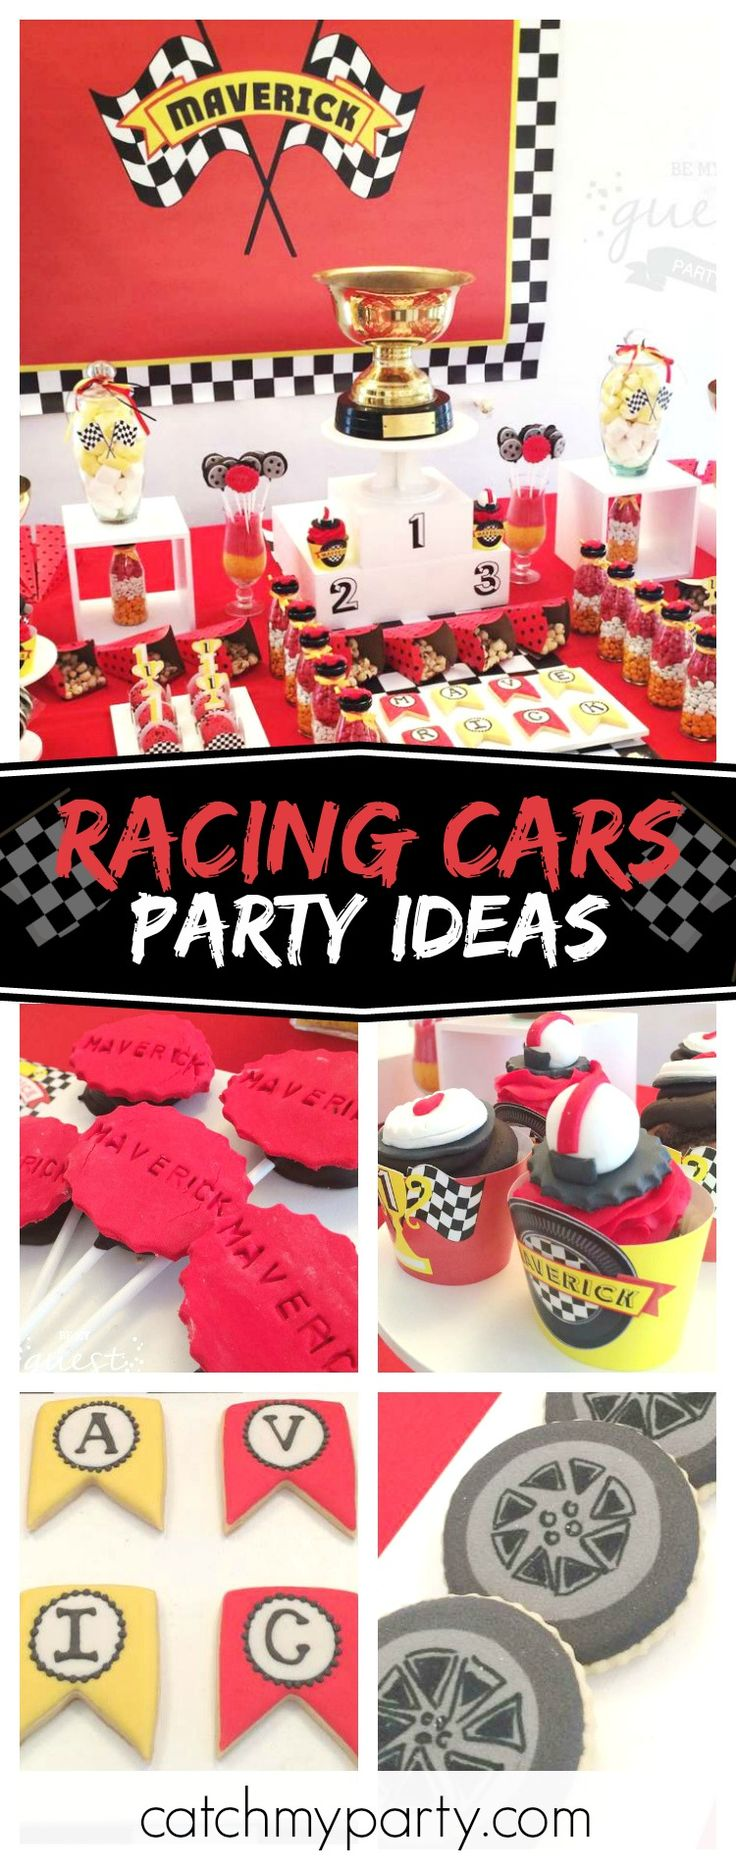 Check out this amazing Racing Car birthday party. The tire cookies are awesome!! See more party ideas and share yours at CatchMyParty.com